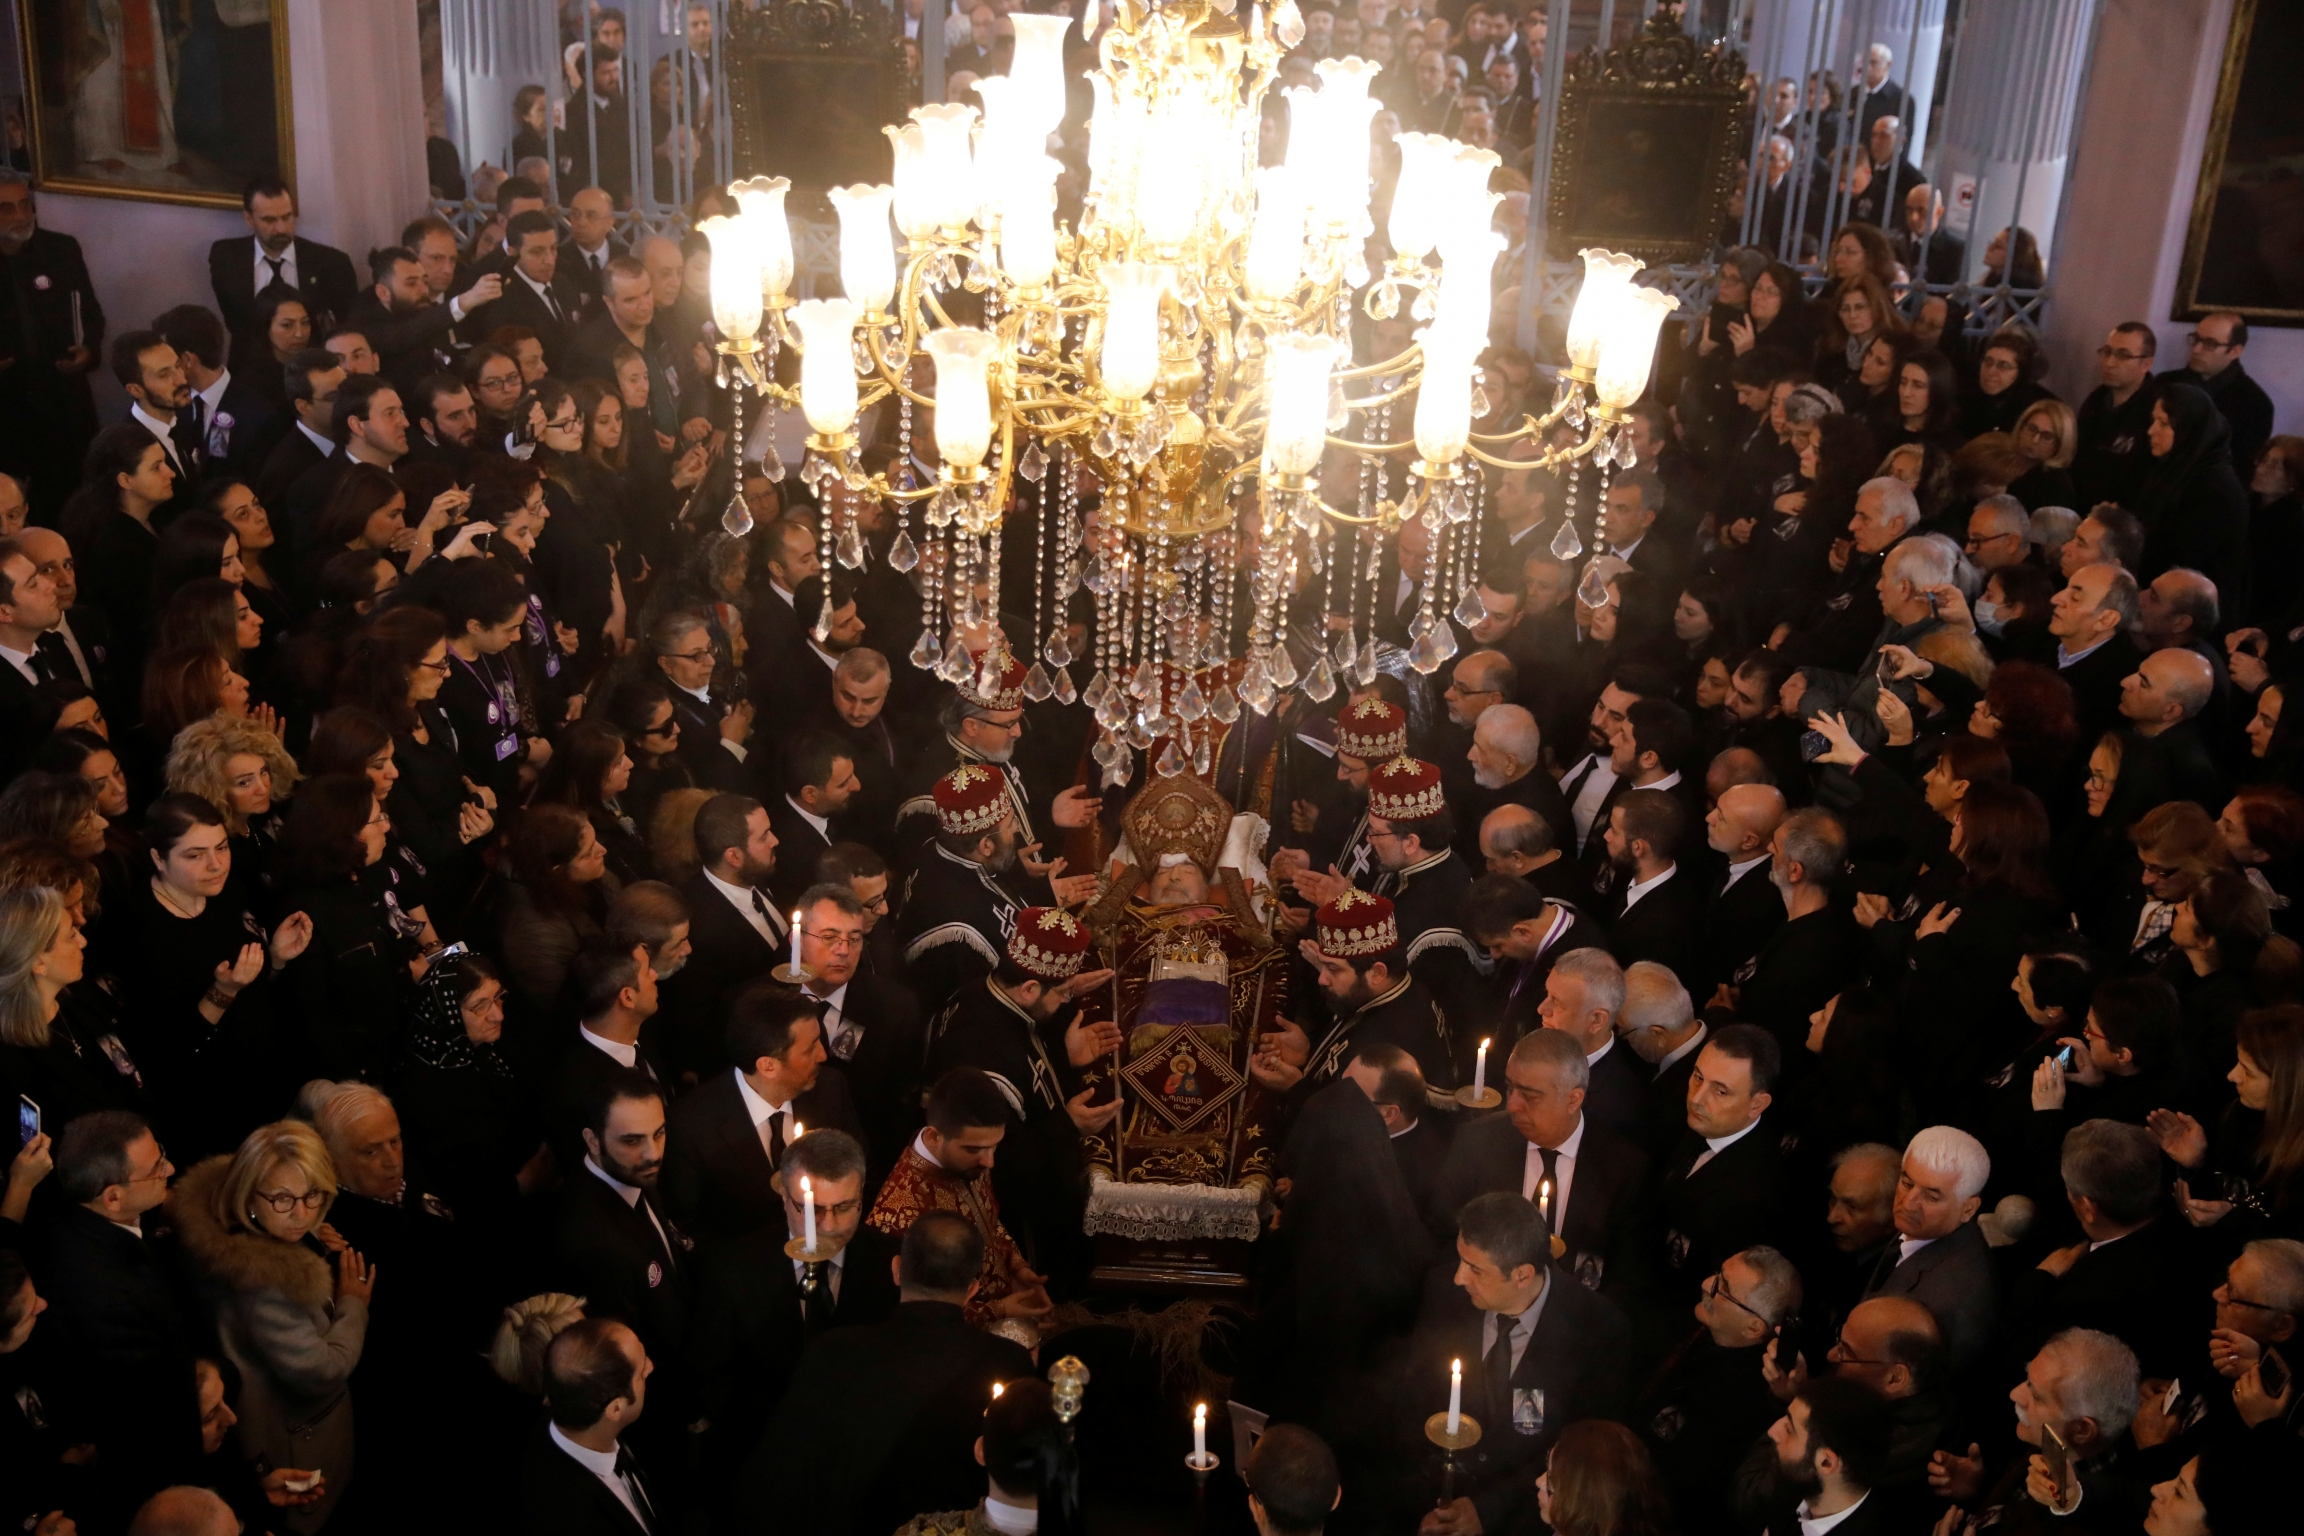 Mourners in black for Armenian Patriach stand under huge chandelier in church.